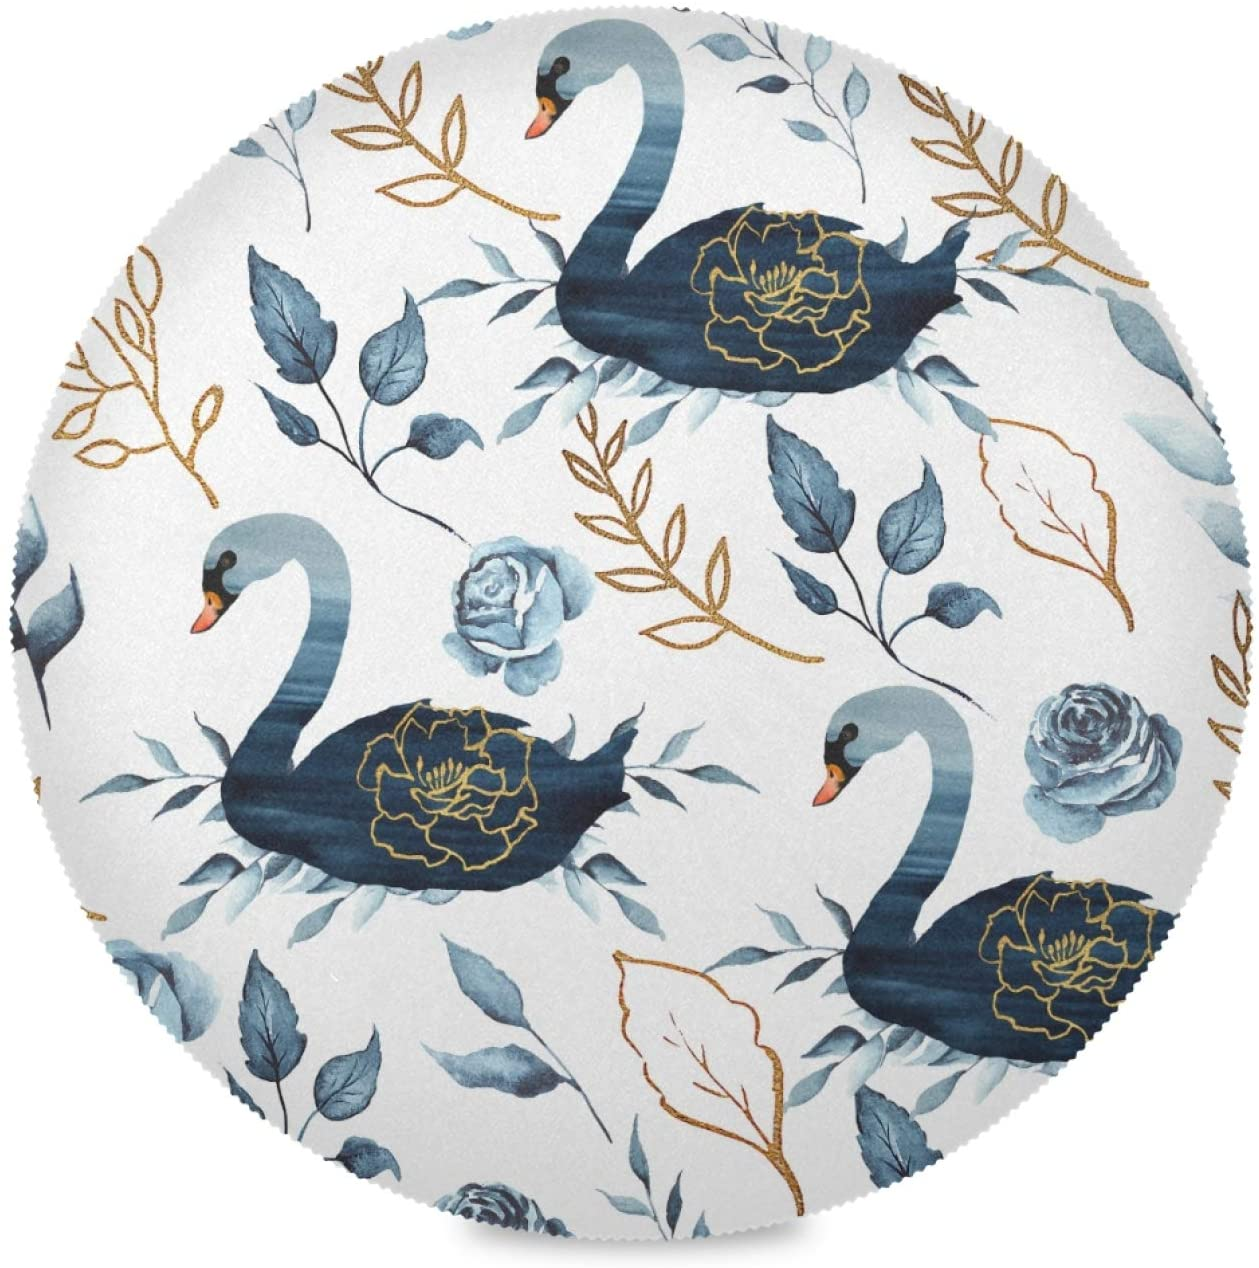 Wudan Round Placemats Swan Gold Elements Flowers Leaves Set of 6 Pieces Heat-Resistant Table Mats for Dining Kitchen Table Decoration Skid-Proof Stain Resistant Easy to Clean(Diameter15.4inch)